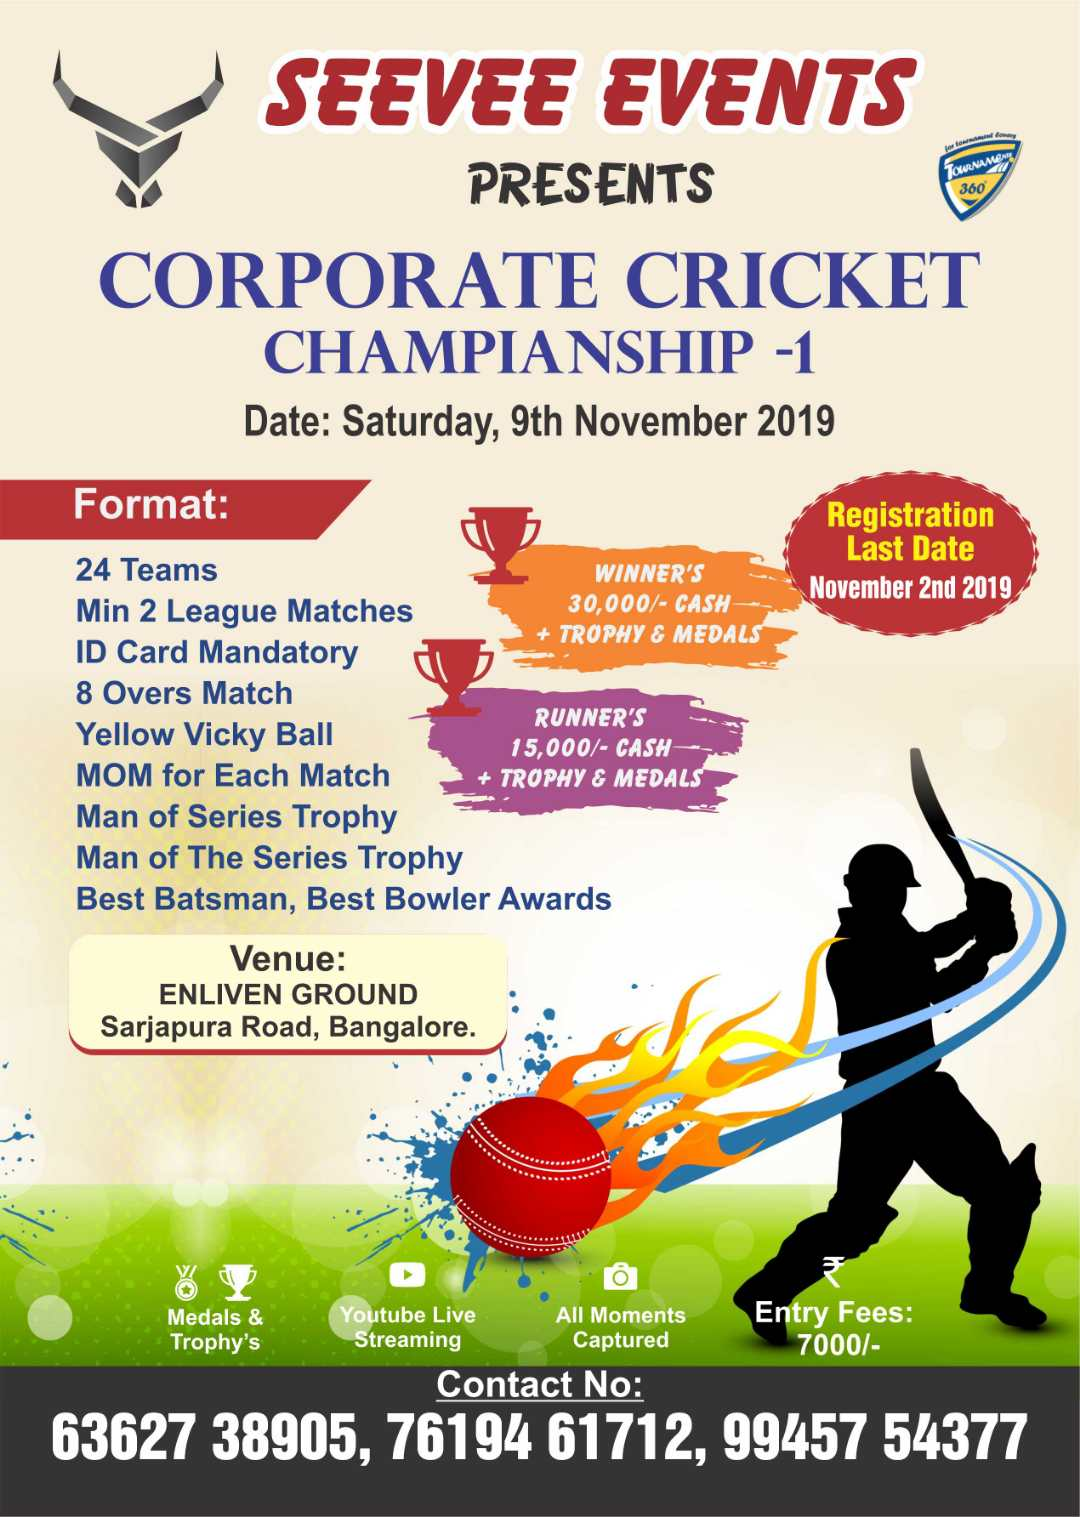 Corporate Cricket Championship 1